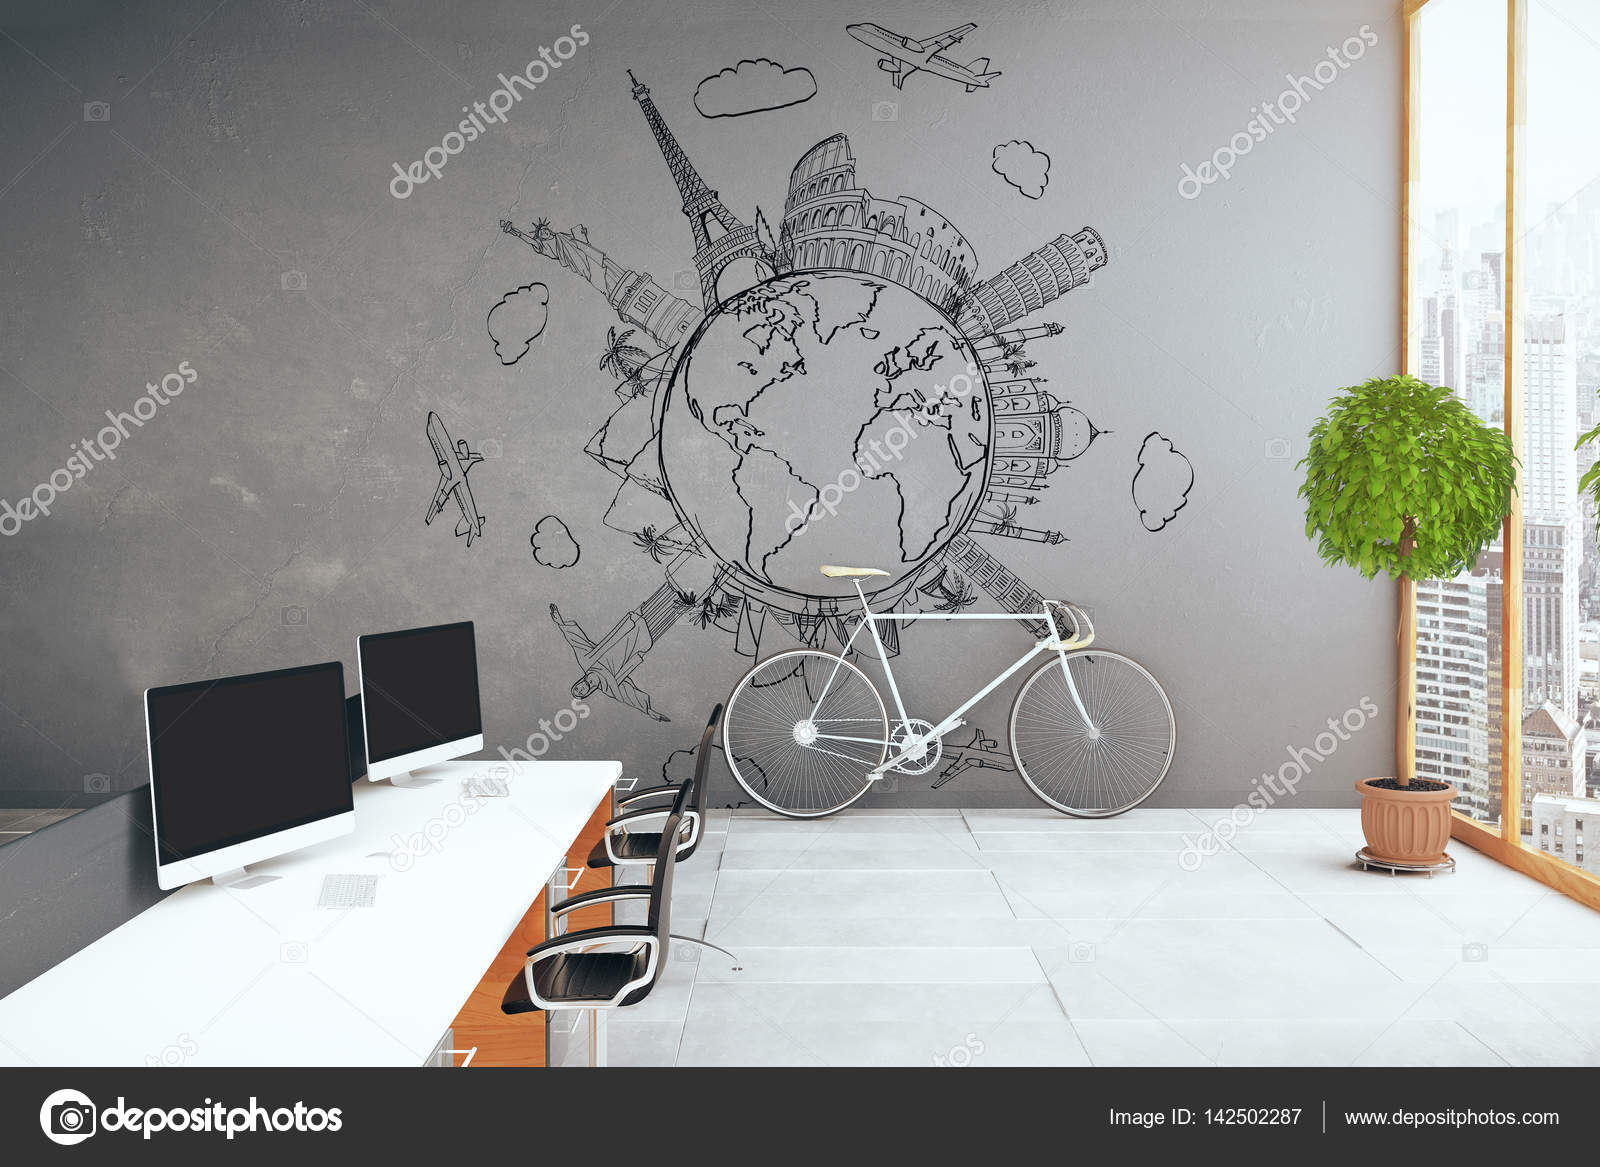 Side View Of Creative Modern Office With Equipment Traveling Sketch On Concrete Wall Bike City And Decorative Plant Travel Agency Concept